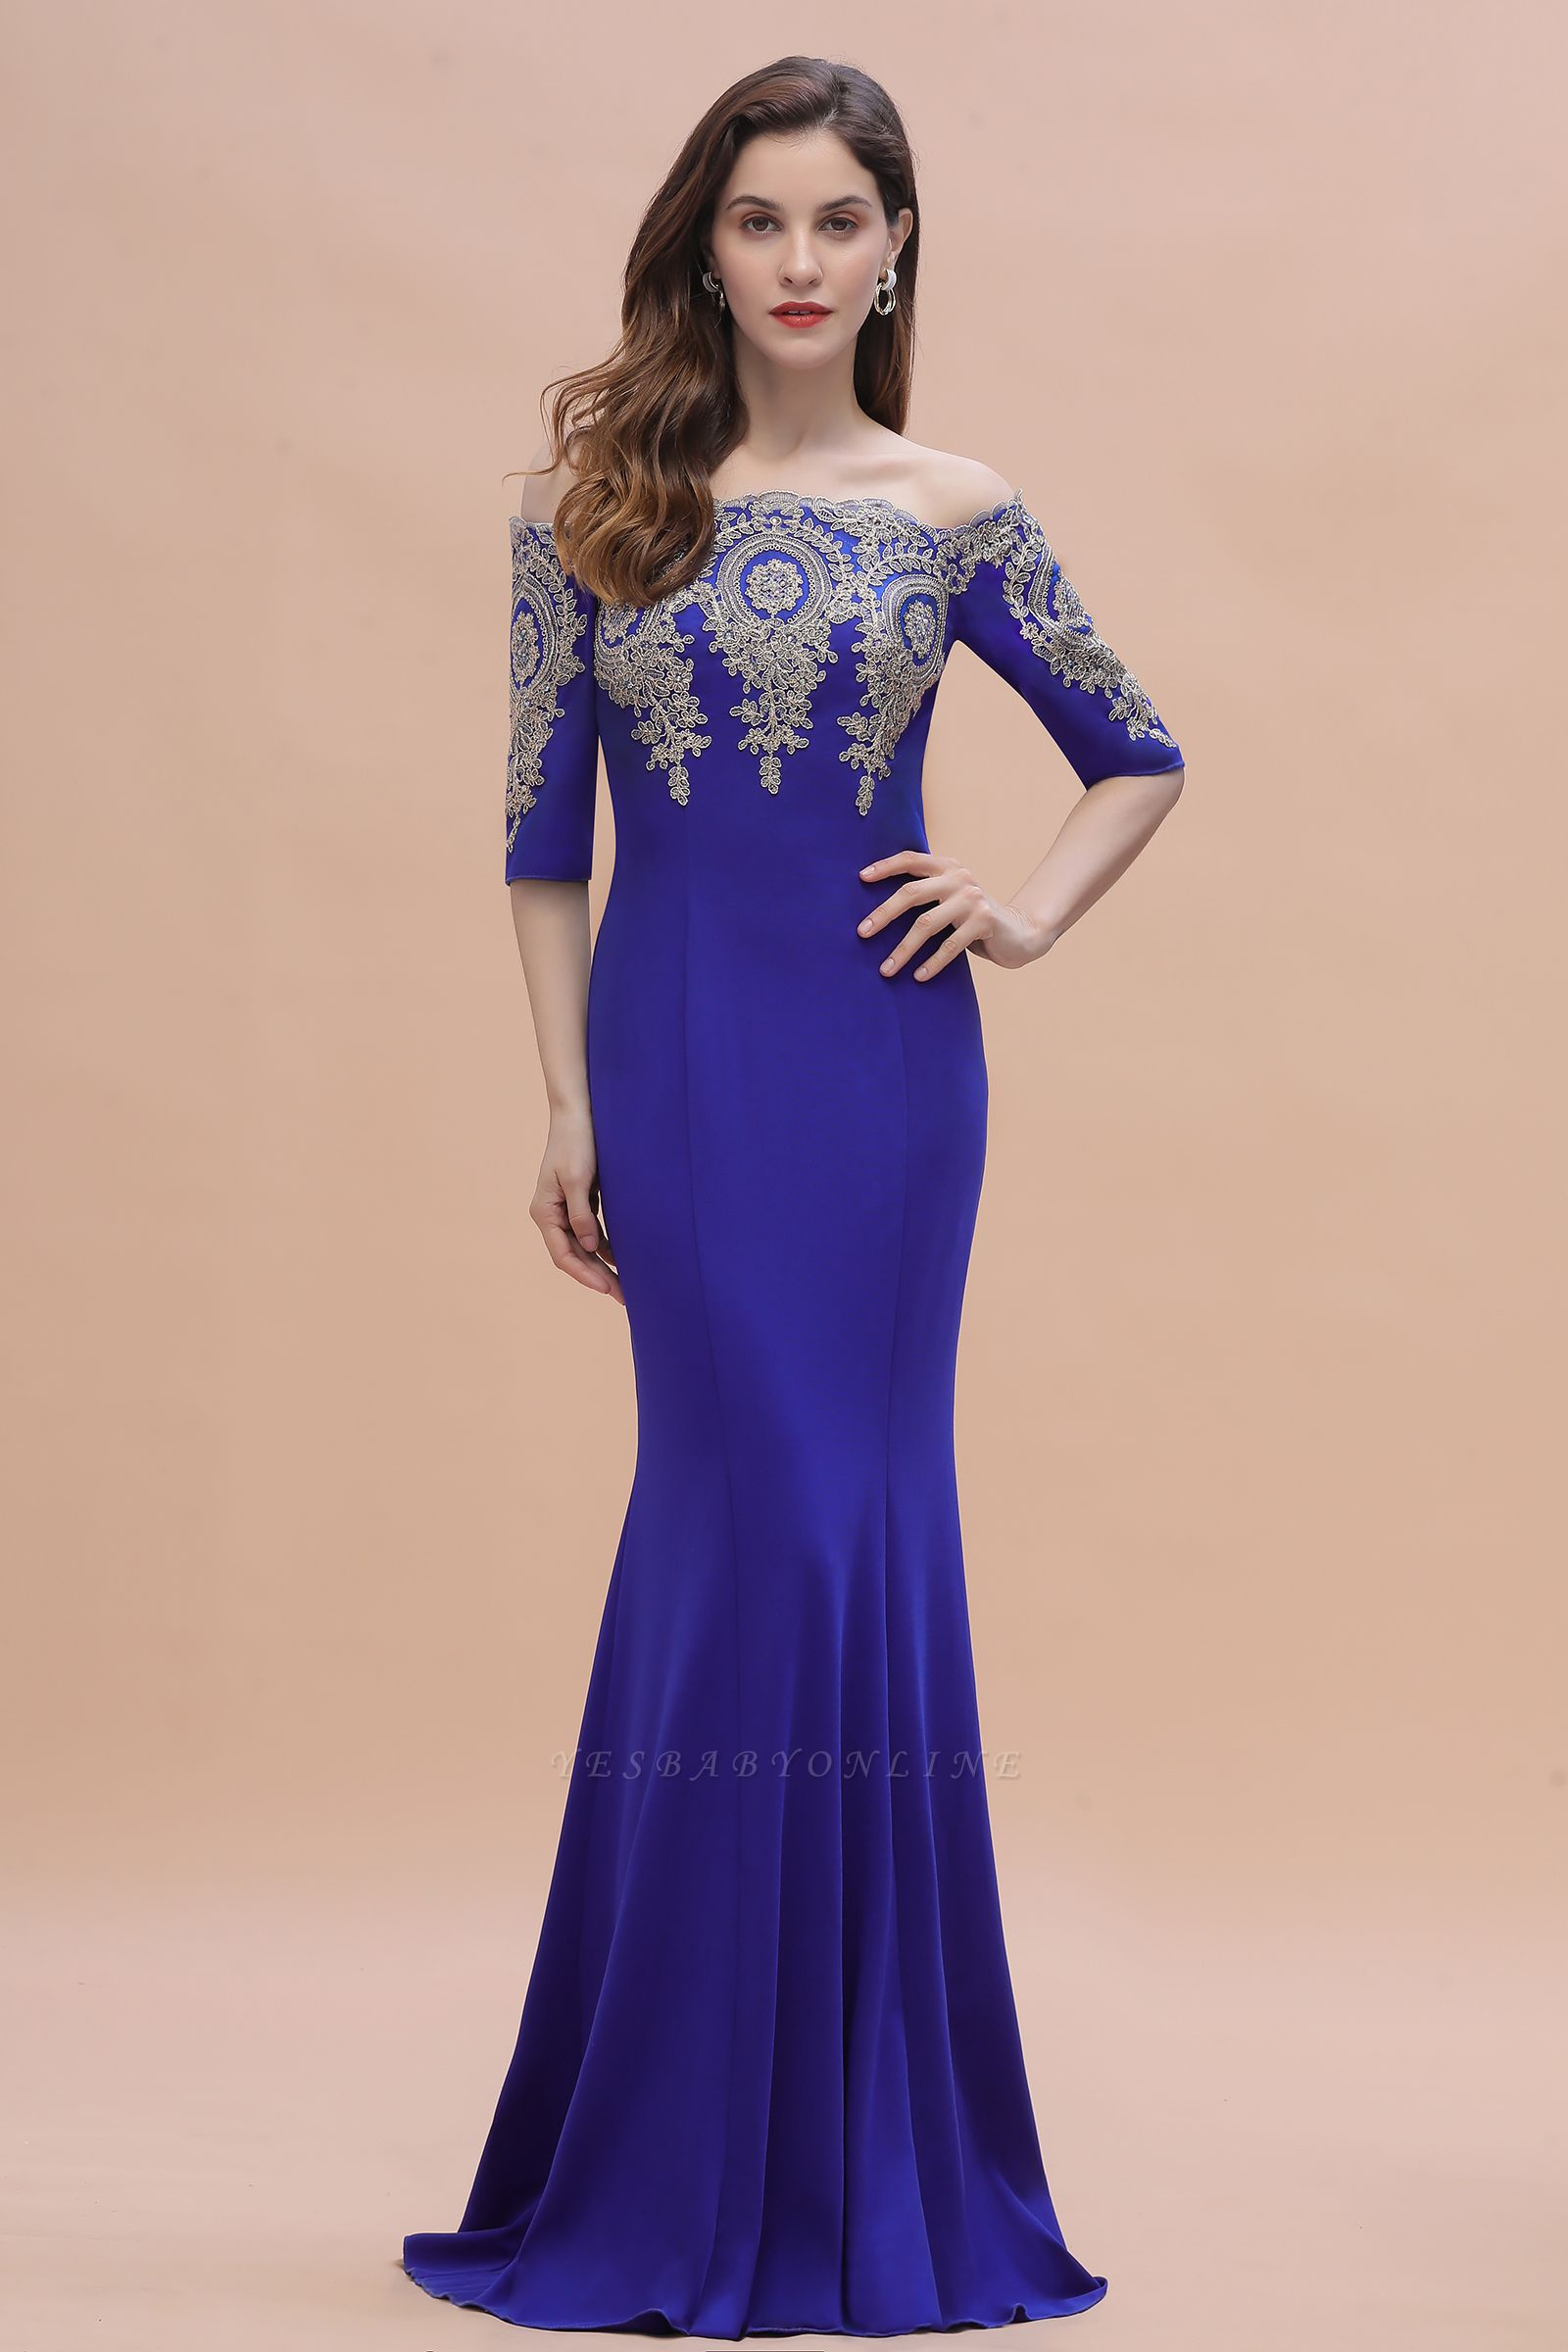 Mermaid Off-Shoulder Chiffon Lace Half Sleeve Evening Dress On Sale